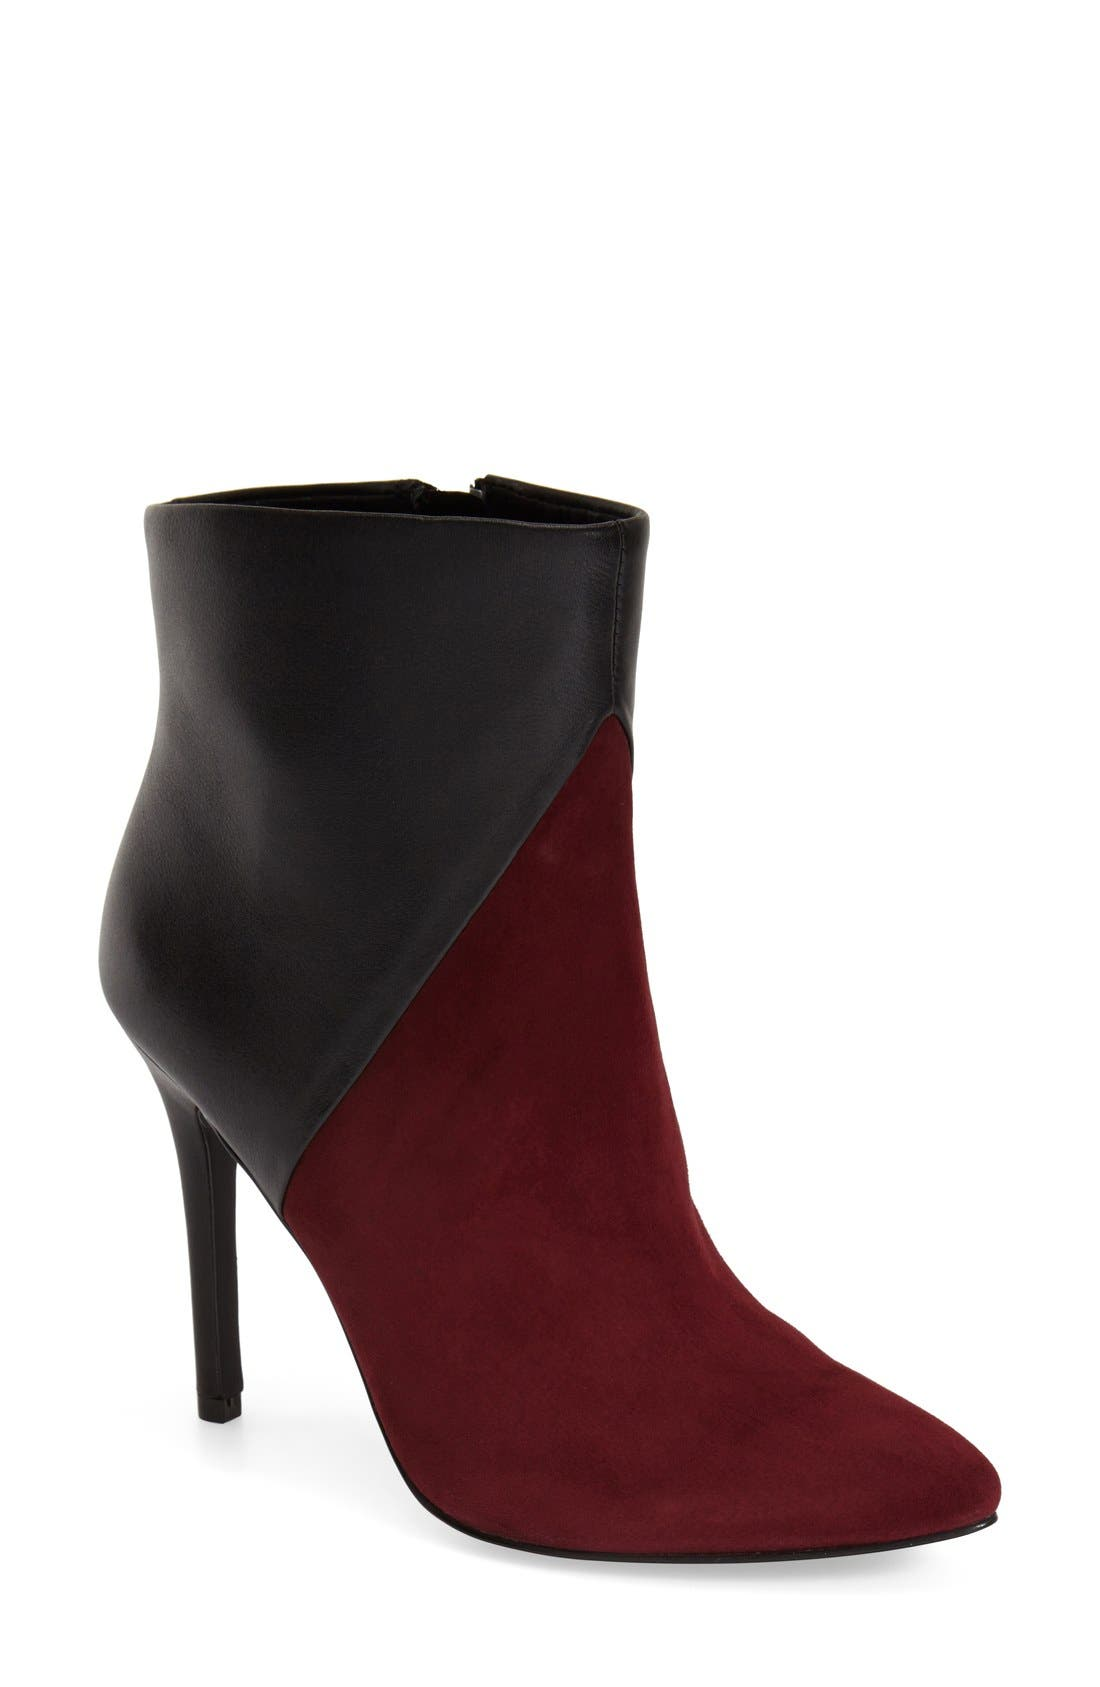 Main Image - Charles by Charles David 'Pine' Pointy Toe Bootie (Women)